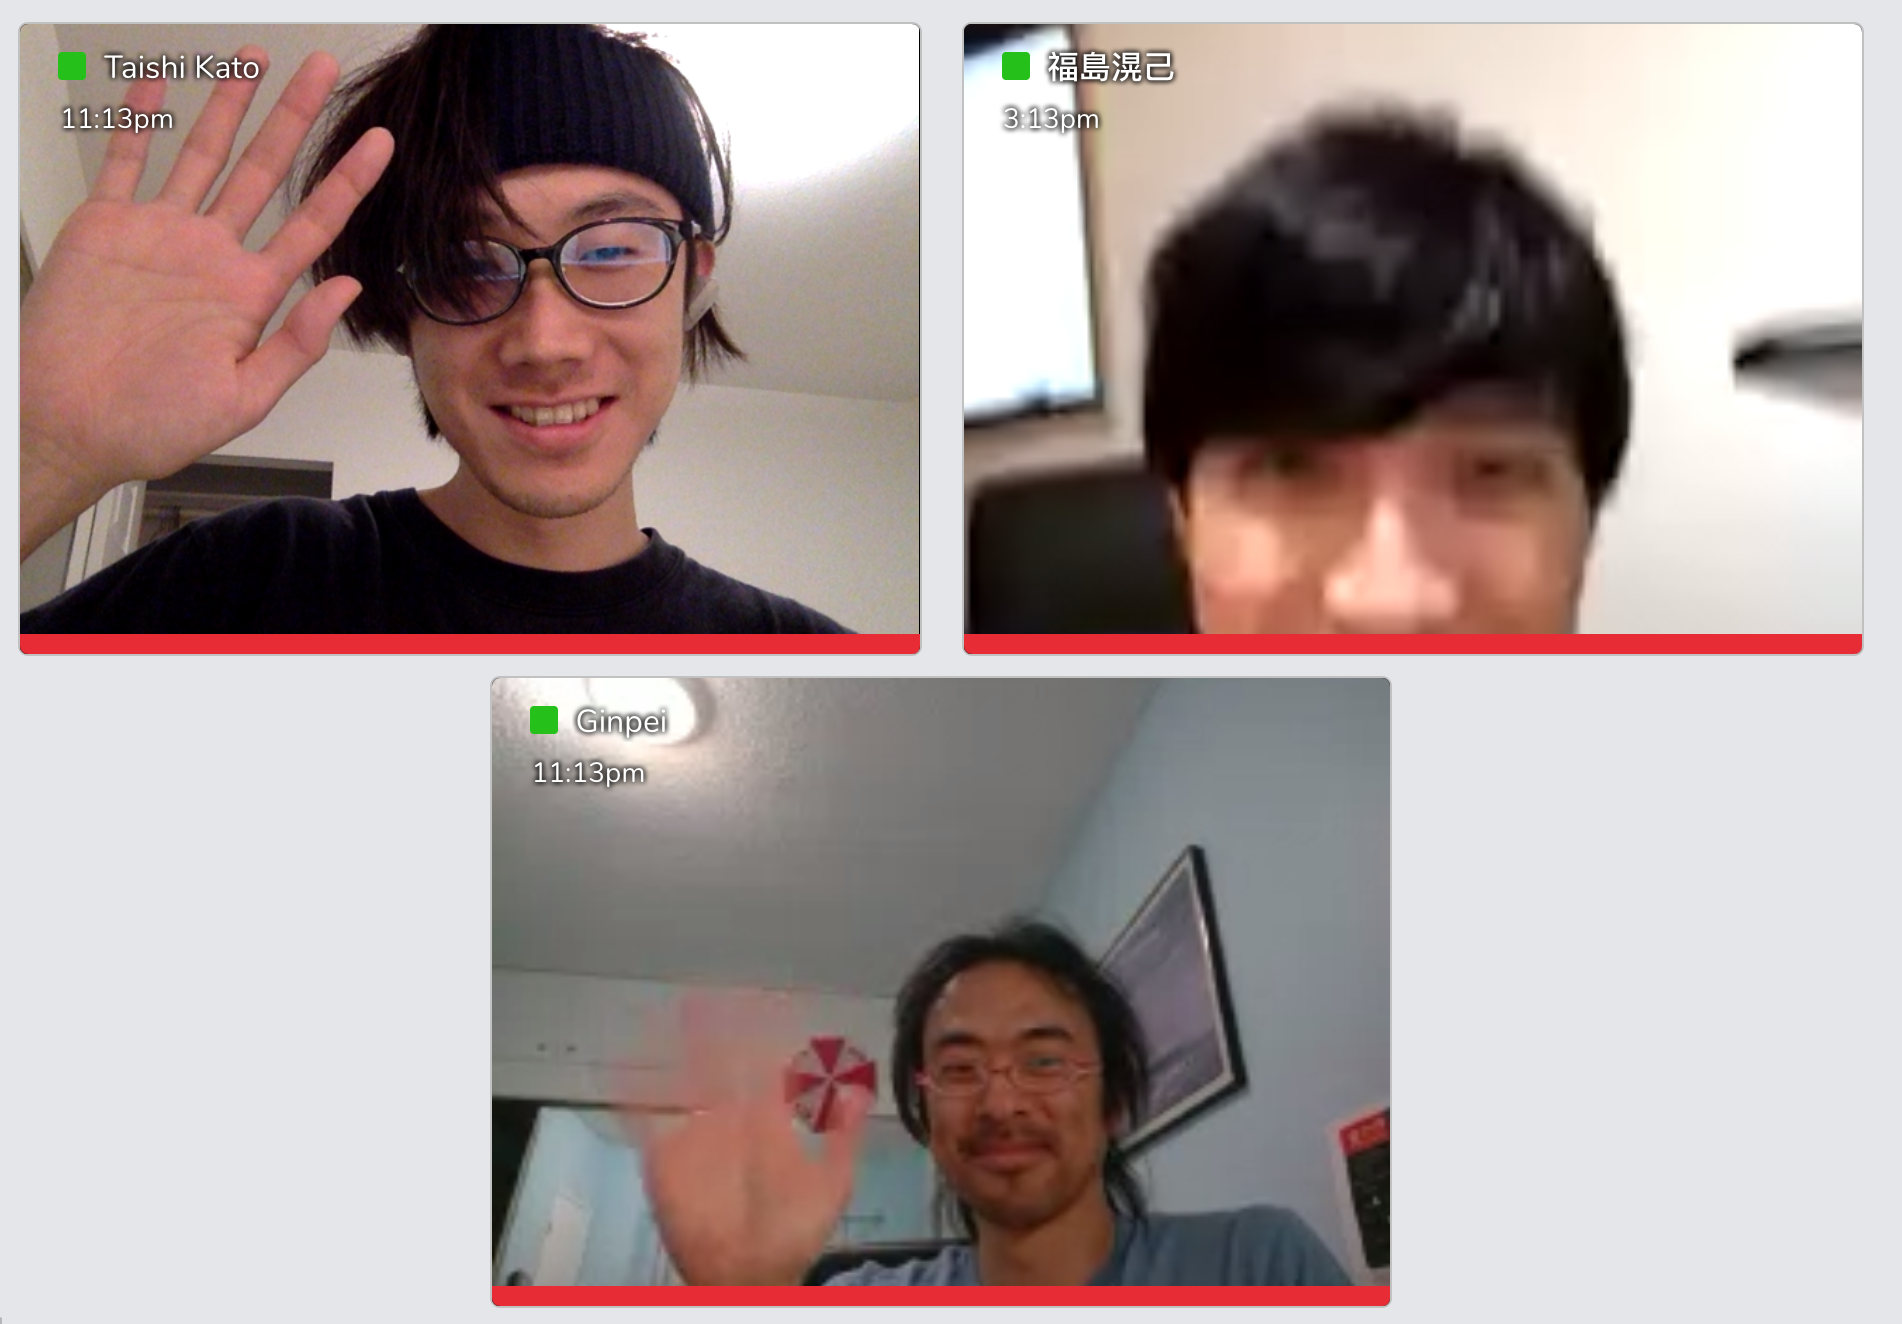 I had a late-night video chat with them. It was fun